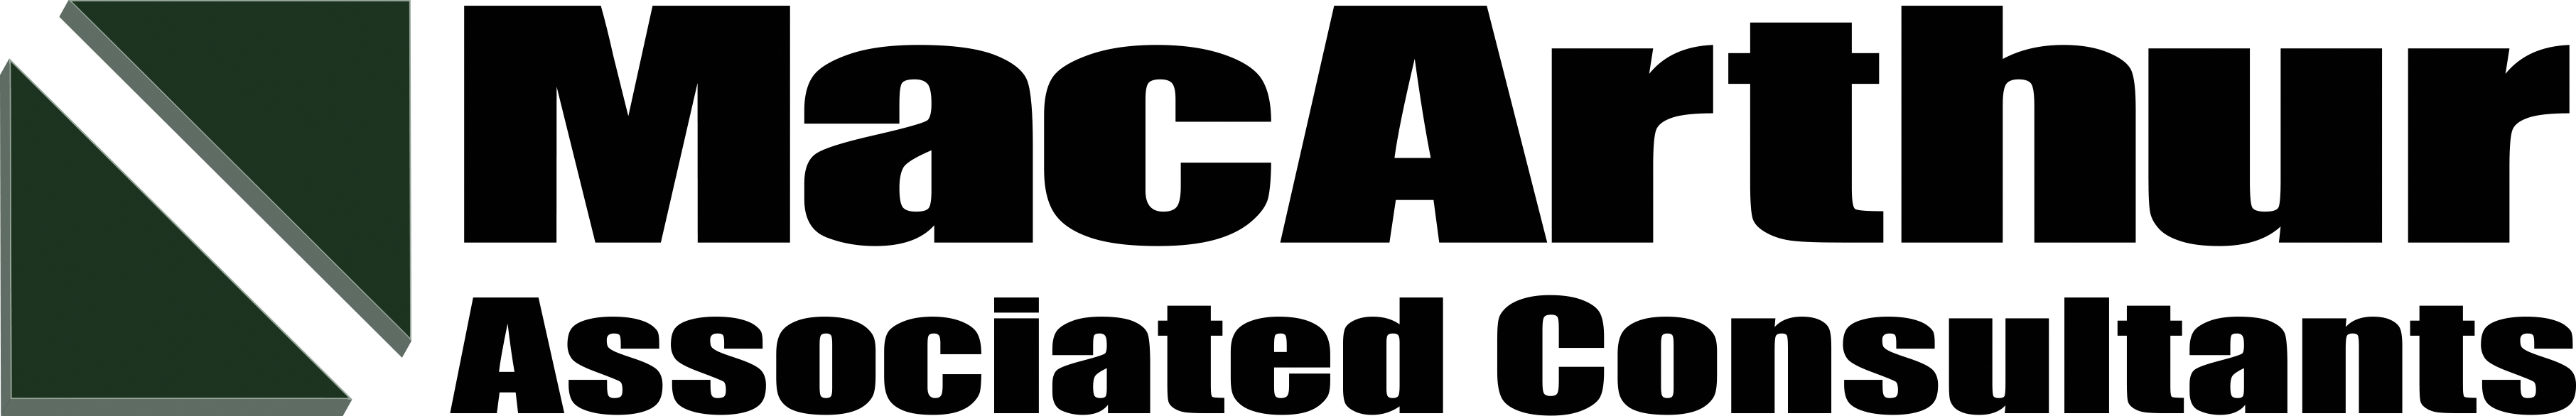 MacArthur Associated Consultants logo